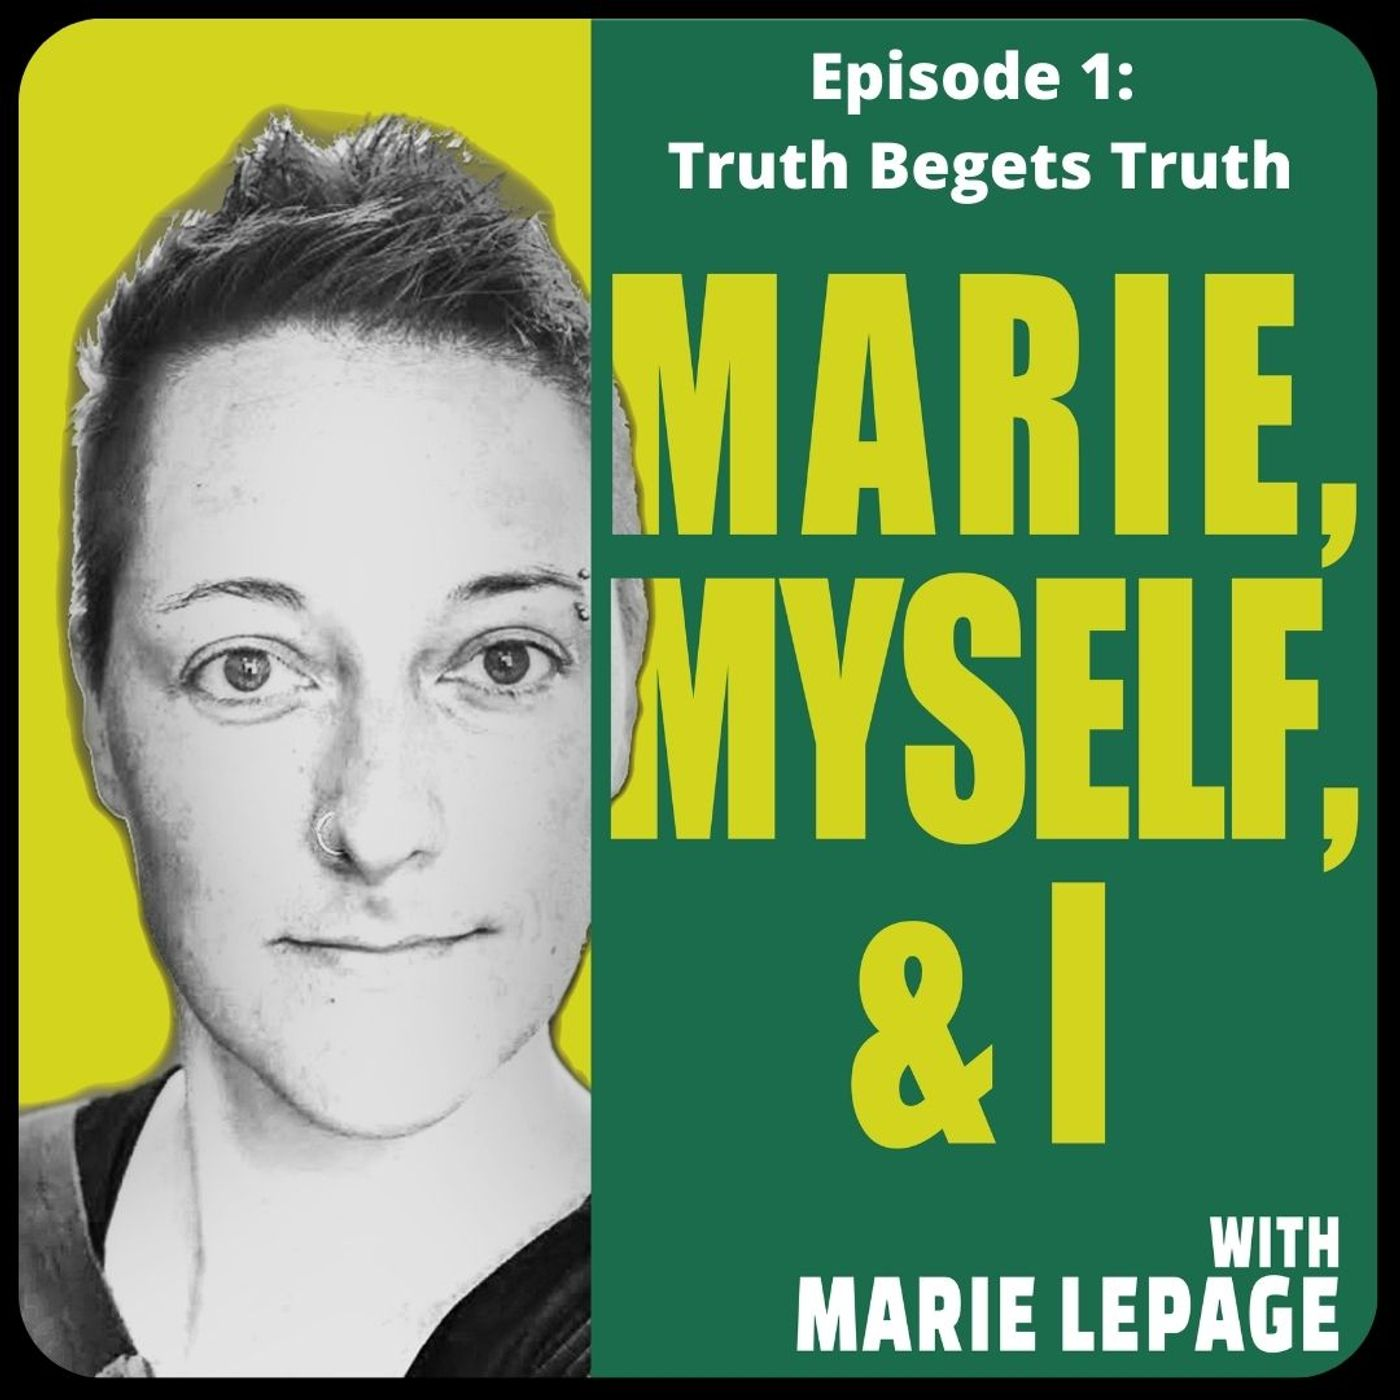 Episode 1: Truth Begets Truth